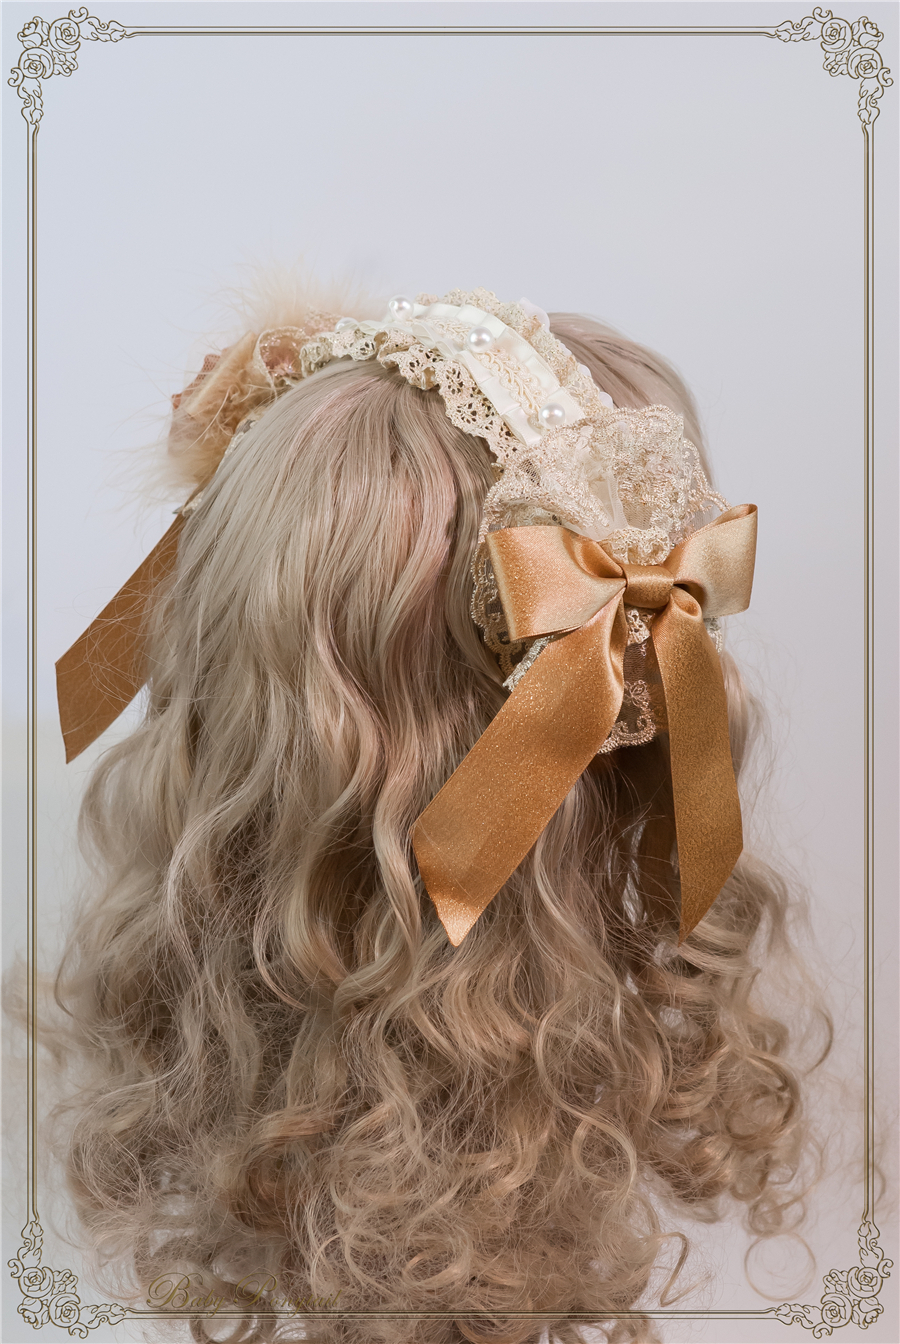 Baby Ponytail_Stock photo_Circus Princess_Rose Head Dress Golden_08.jpg